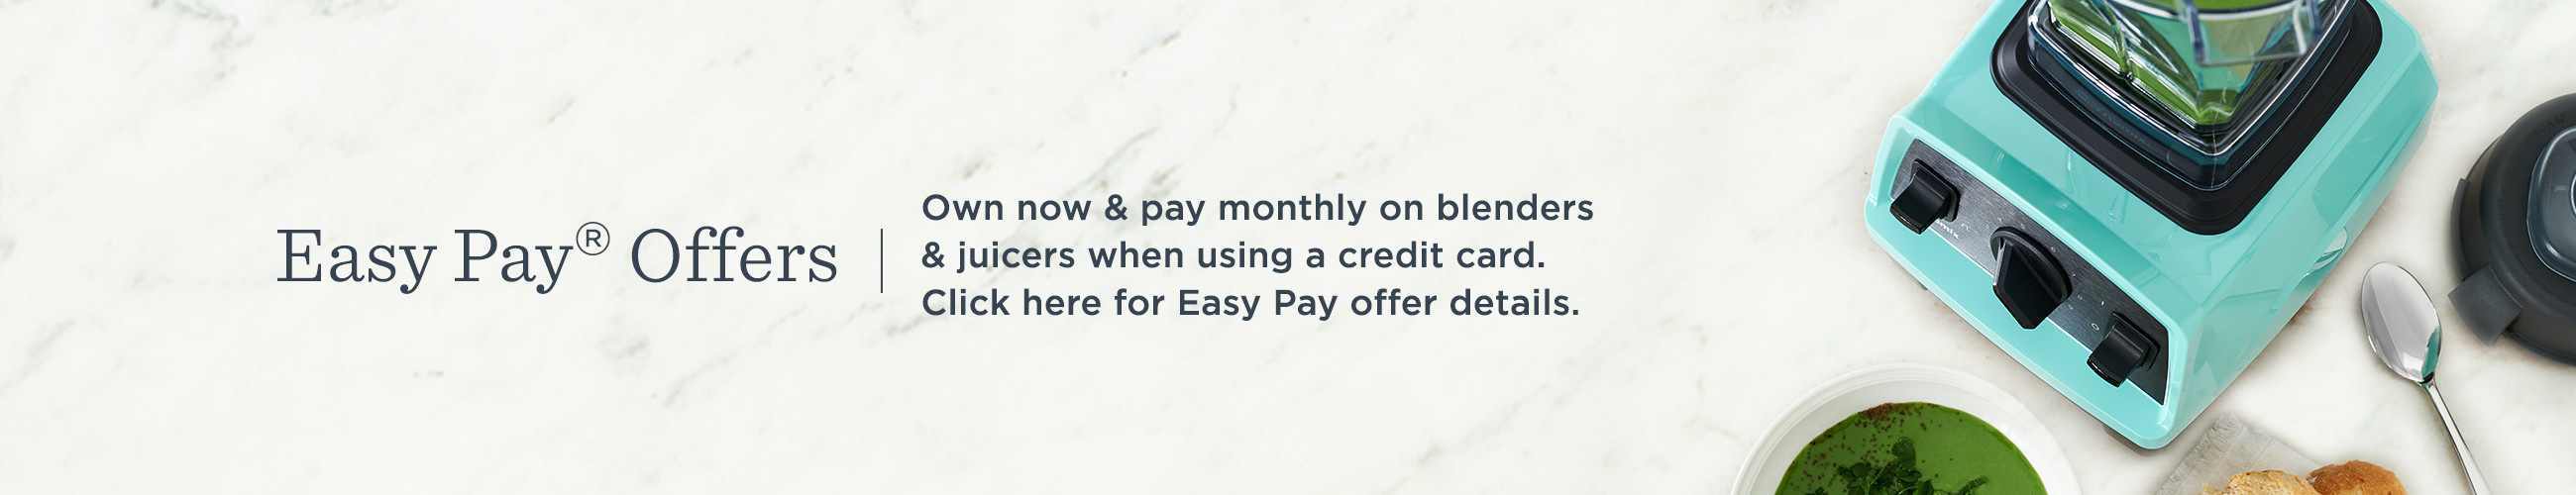 Easy Pay® Offers,  Own now & pay monthly on blenders & juicers when using a credit card.   Click here for Easy Pay offer details.